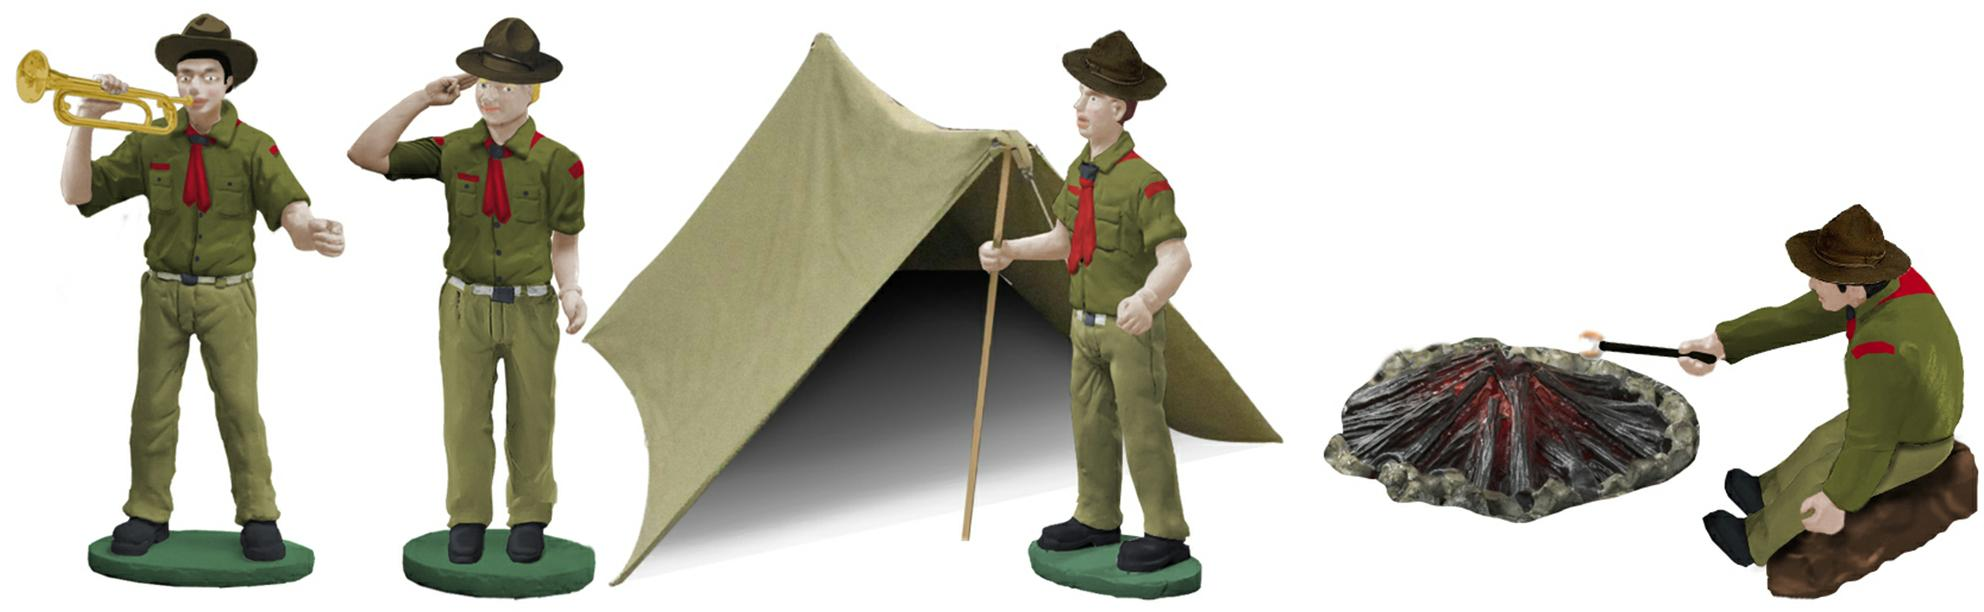 Vintage Boy Scouts of America Figure Pack image